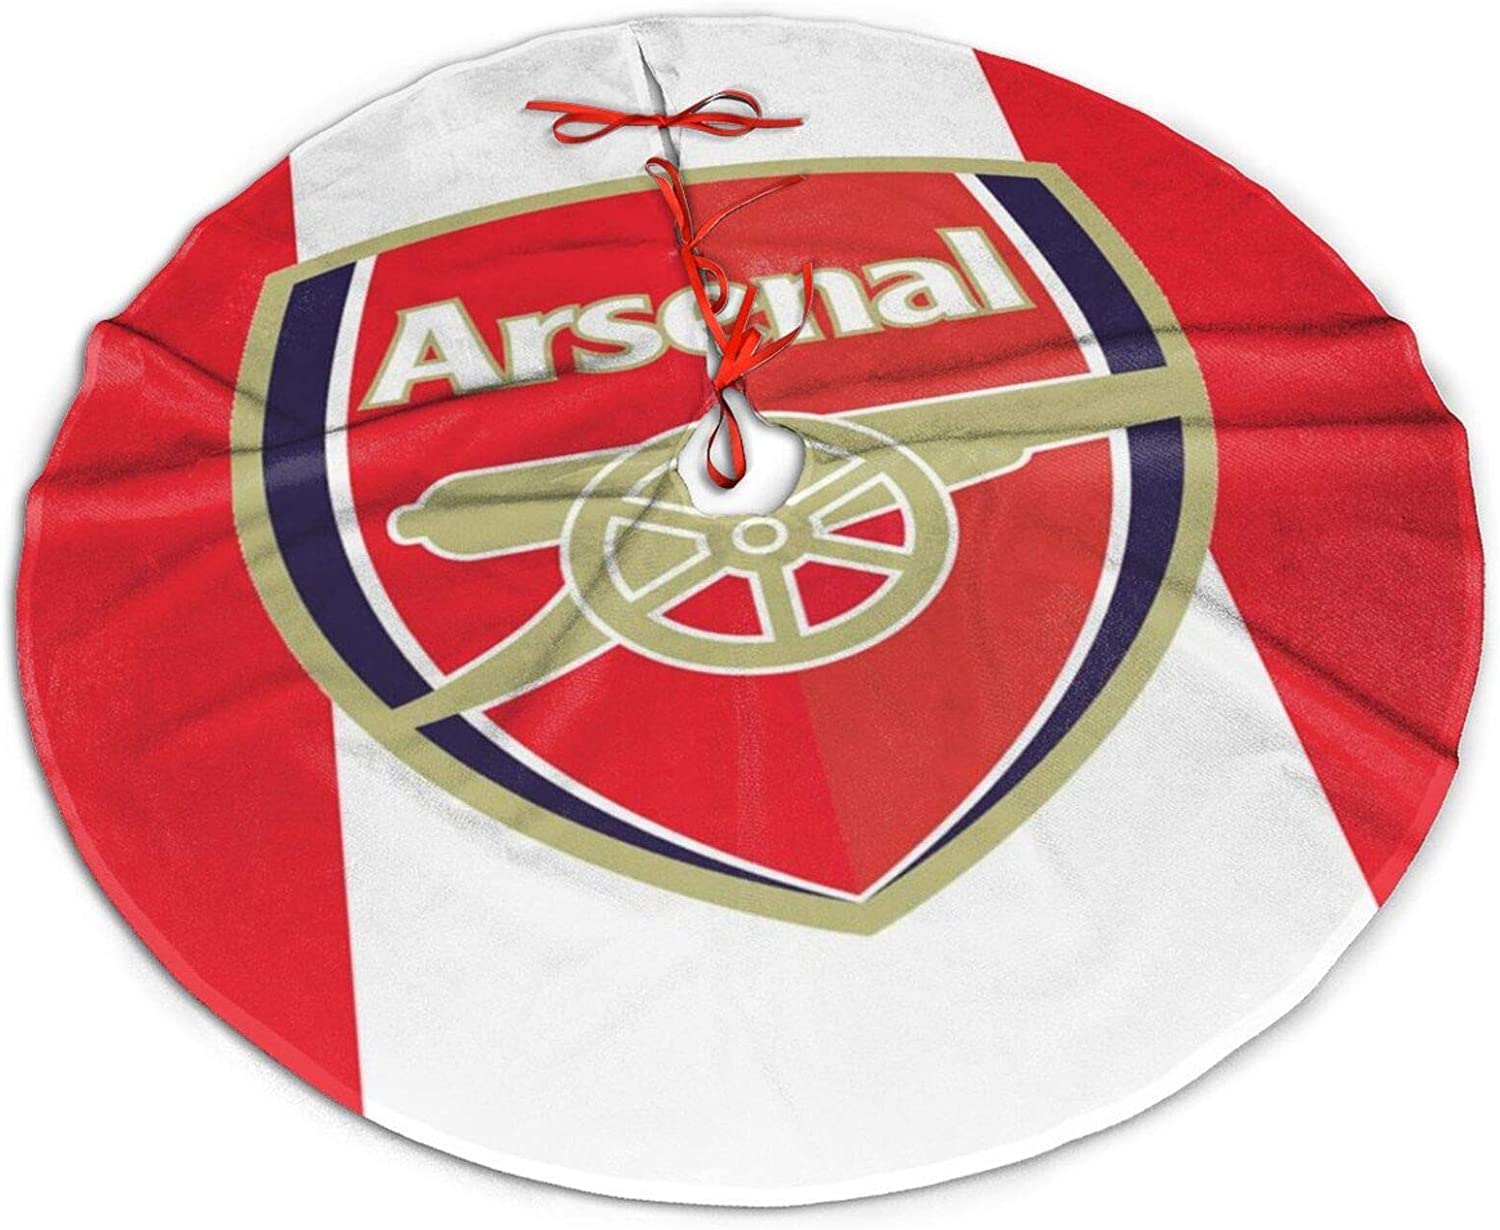 Logo Arsenal Fc Christmas Tree Skirt 36 Inch Holiday Home Decor ,Soft, Light and Good to Touch